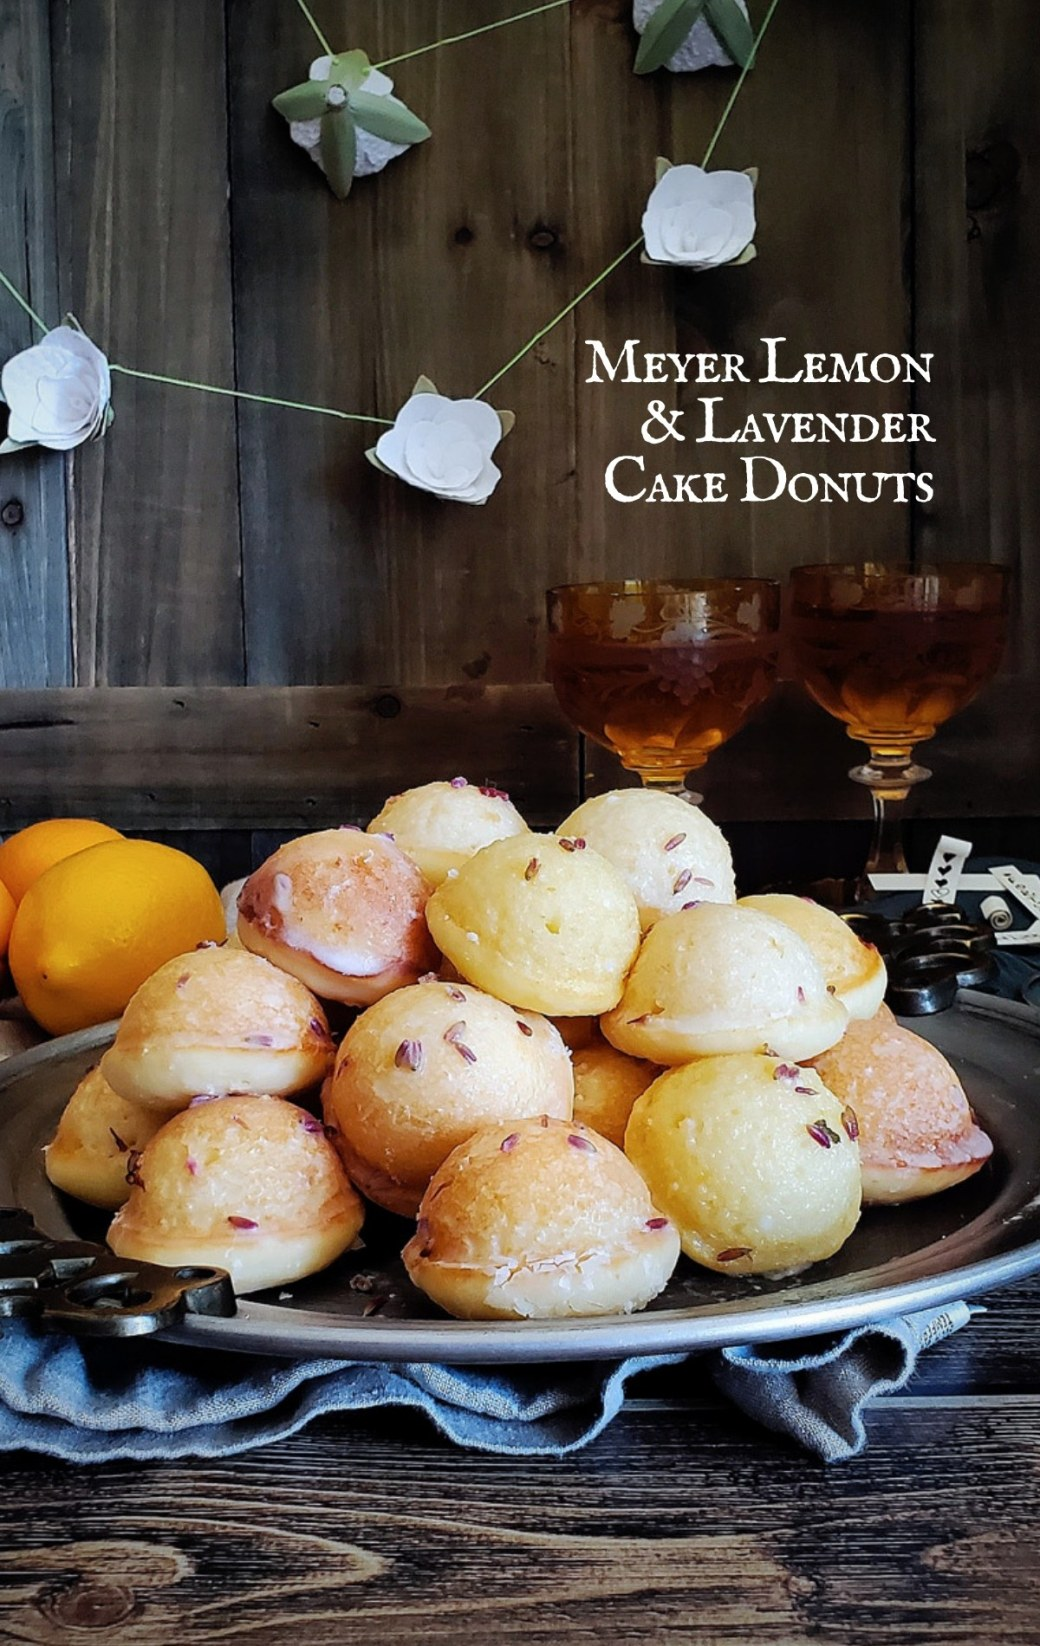 Full of citrus zest and coated in sugary glaze, these Meyer Lemon Lavender Cake Donuts are a bright and beautiful treat. #donut #baking #lemon #teaparty | FeastInThyme.com